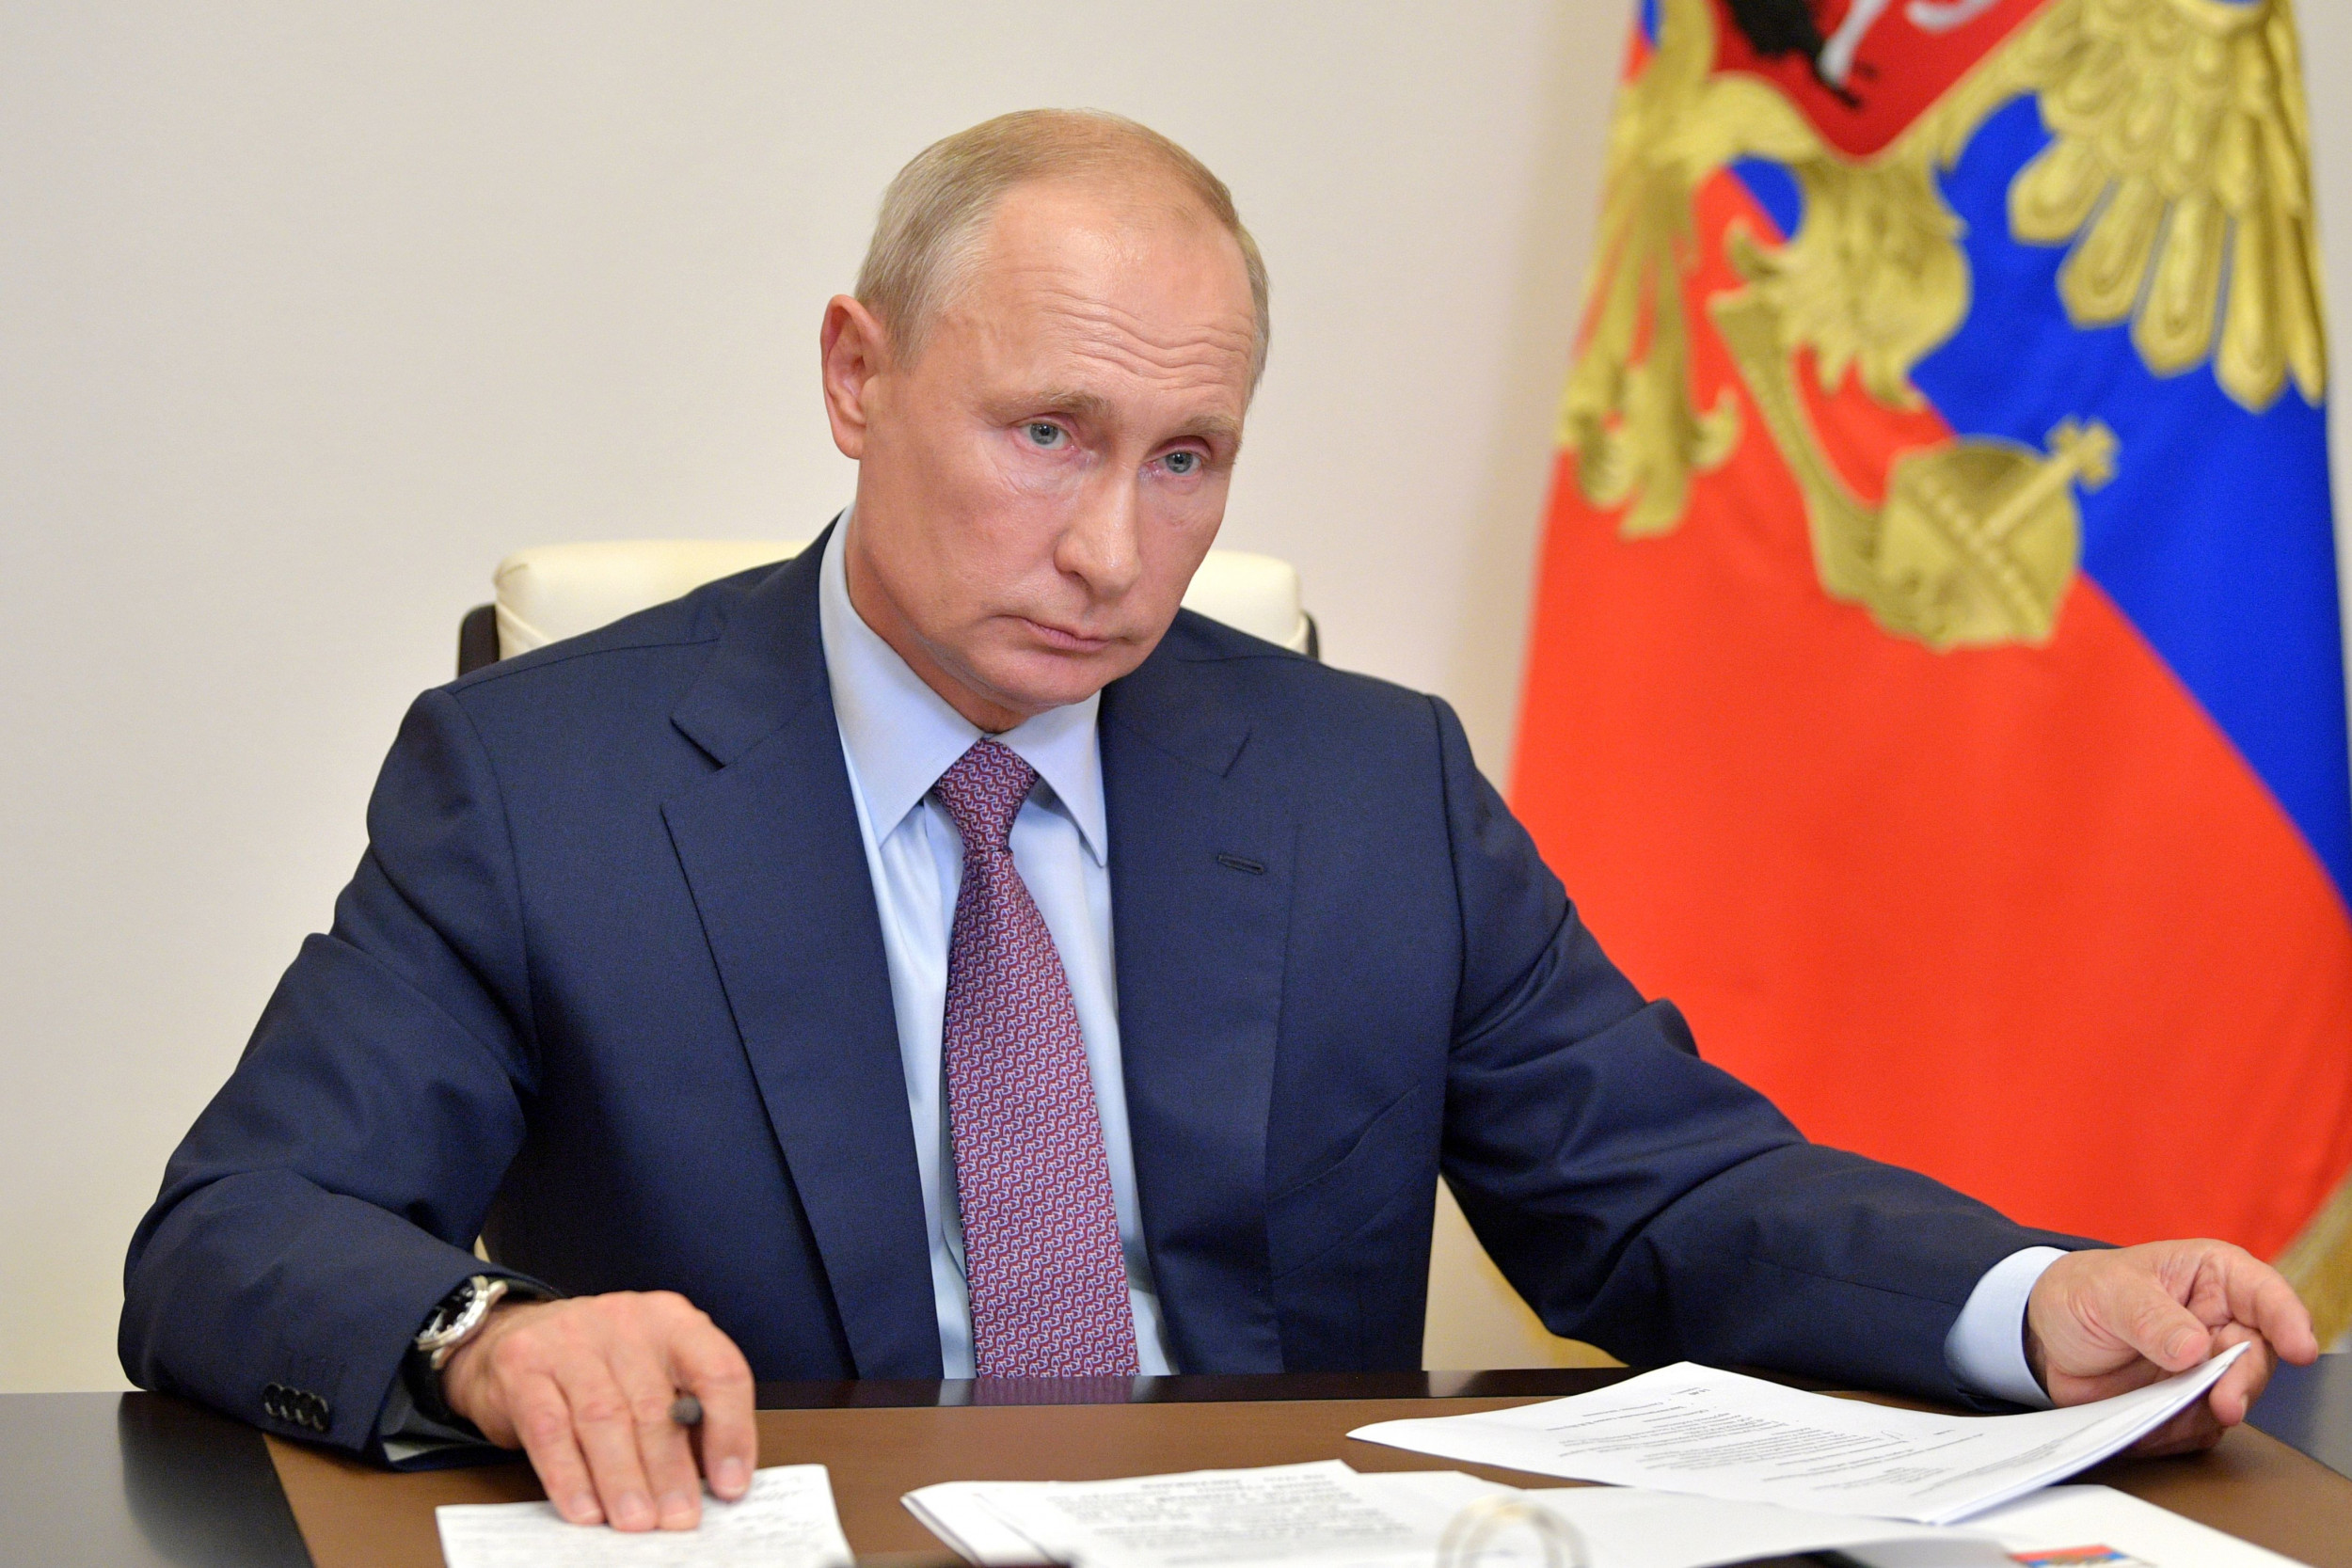 Putin Says His Daughter Had Russia's Newly Approved Covid-19 Vaccine